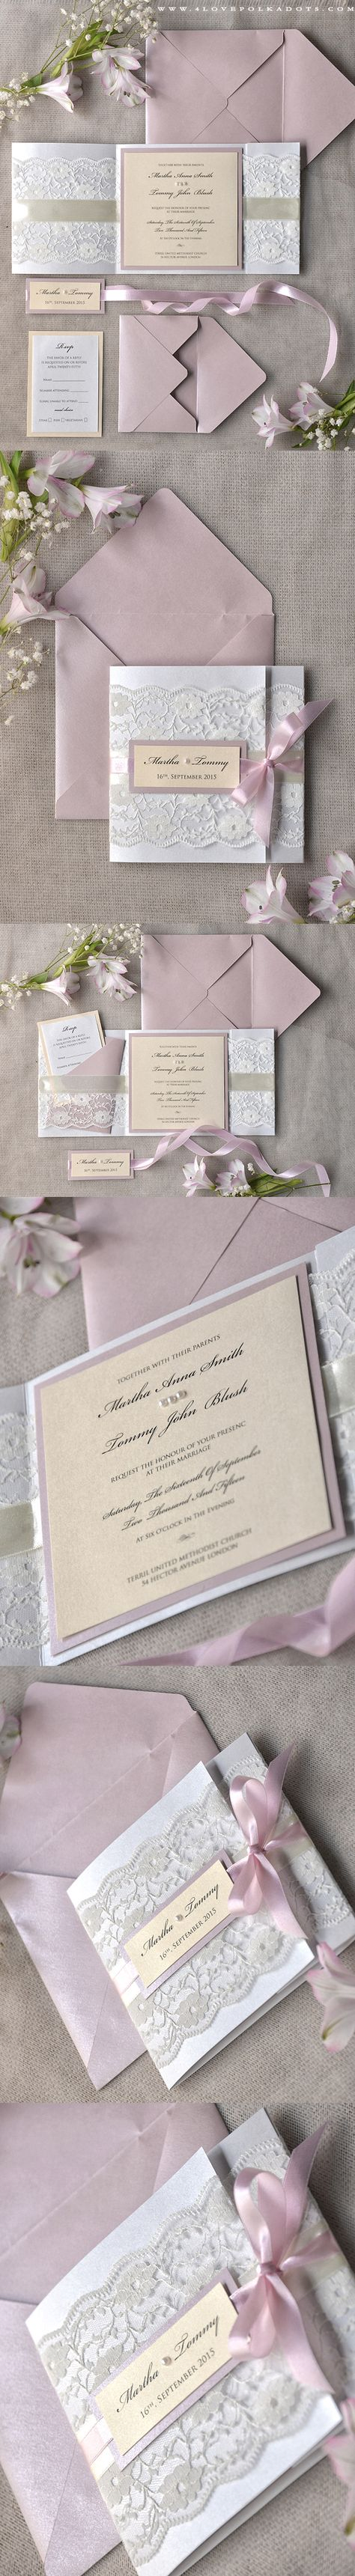 White Pink Elegant Romantic Wedding Invitation Laser Cut Lace